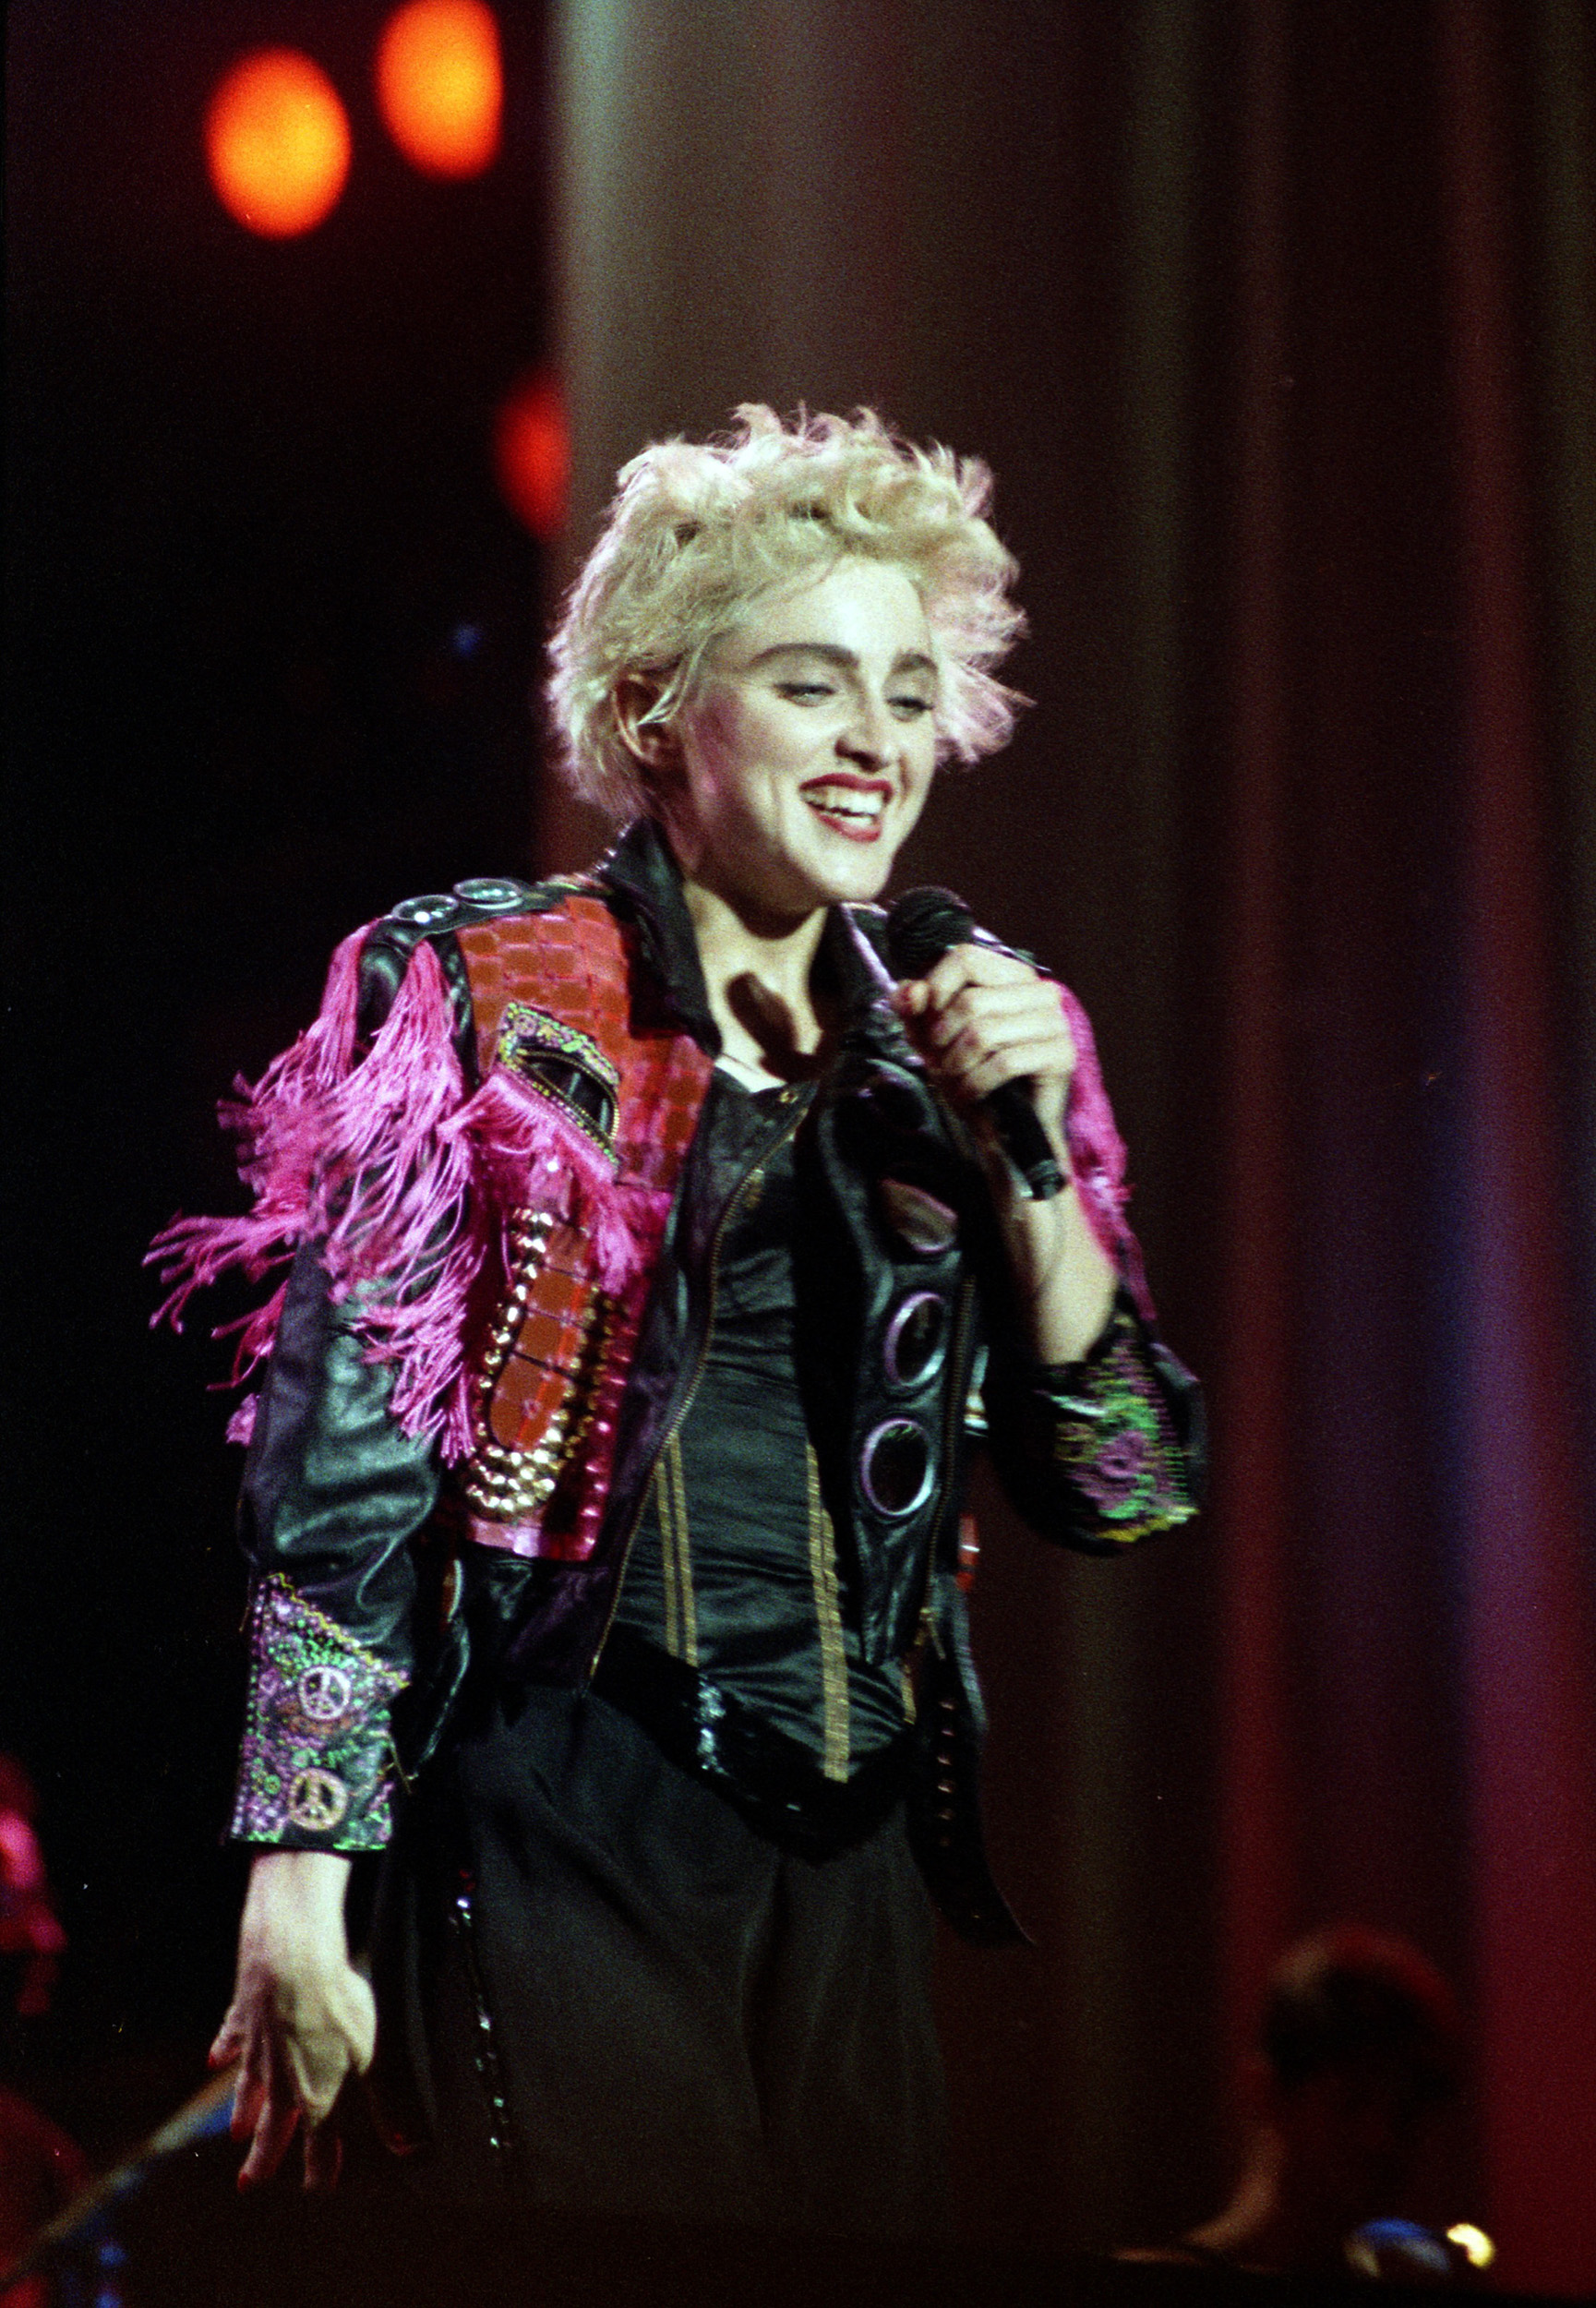 pop muziek popmuziek muzikanten artiest Madonna Wembley Stadium Londen London Engeland 19-08-1987 Queen of Pop Whos That Girl tour Amerikaanse zangeres